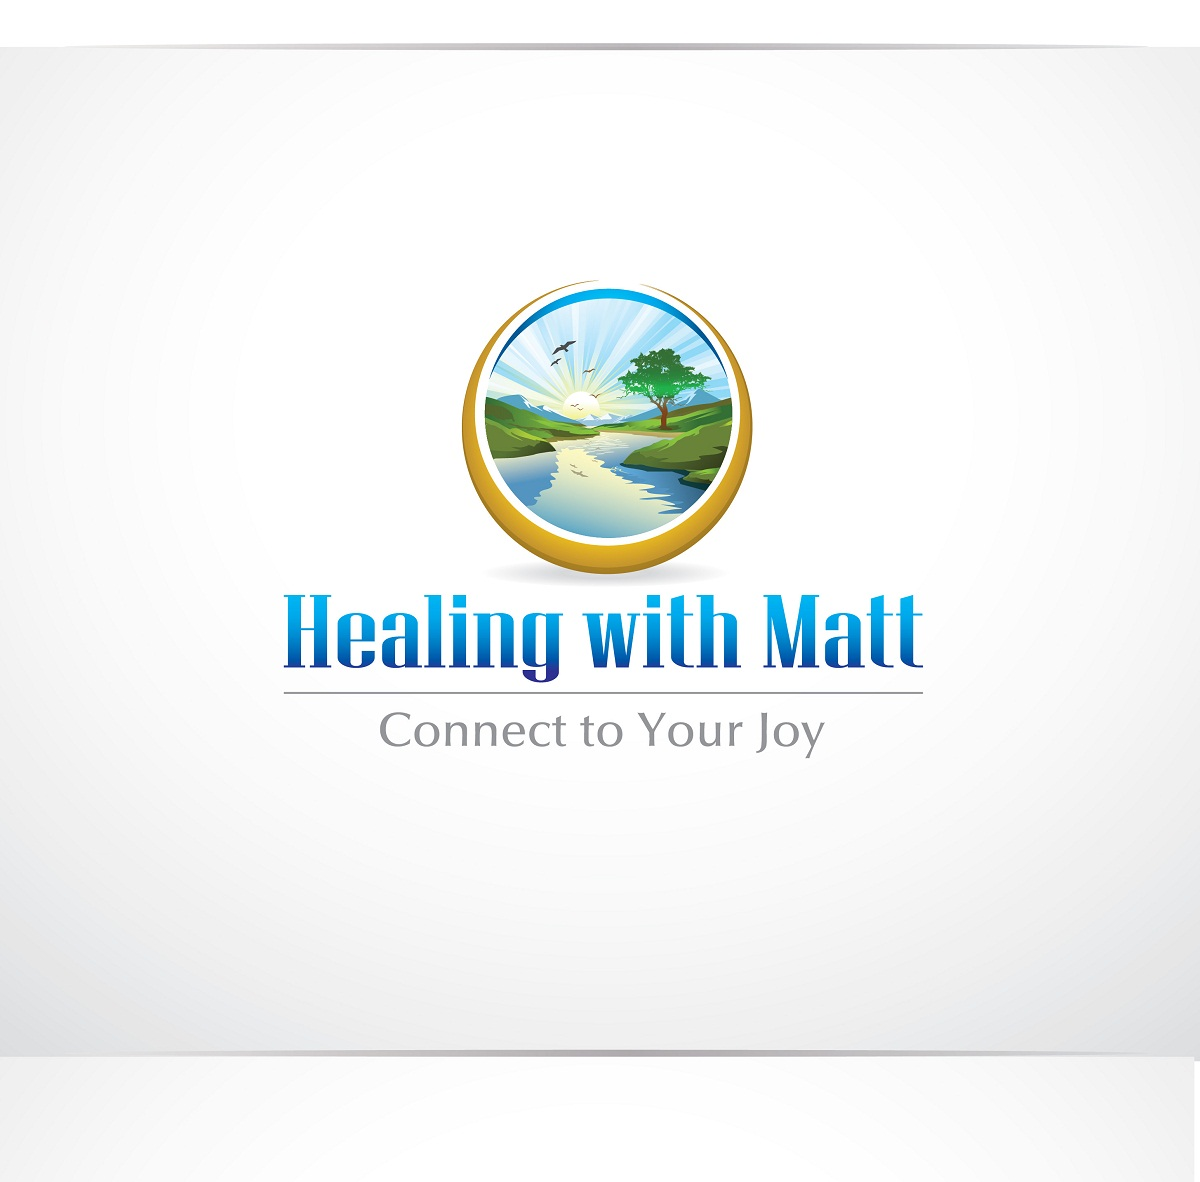 Logo Design by kowreck - Entry No. 106 in the Logo Design Contest Captivating Logo Design for Healing with Matt.